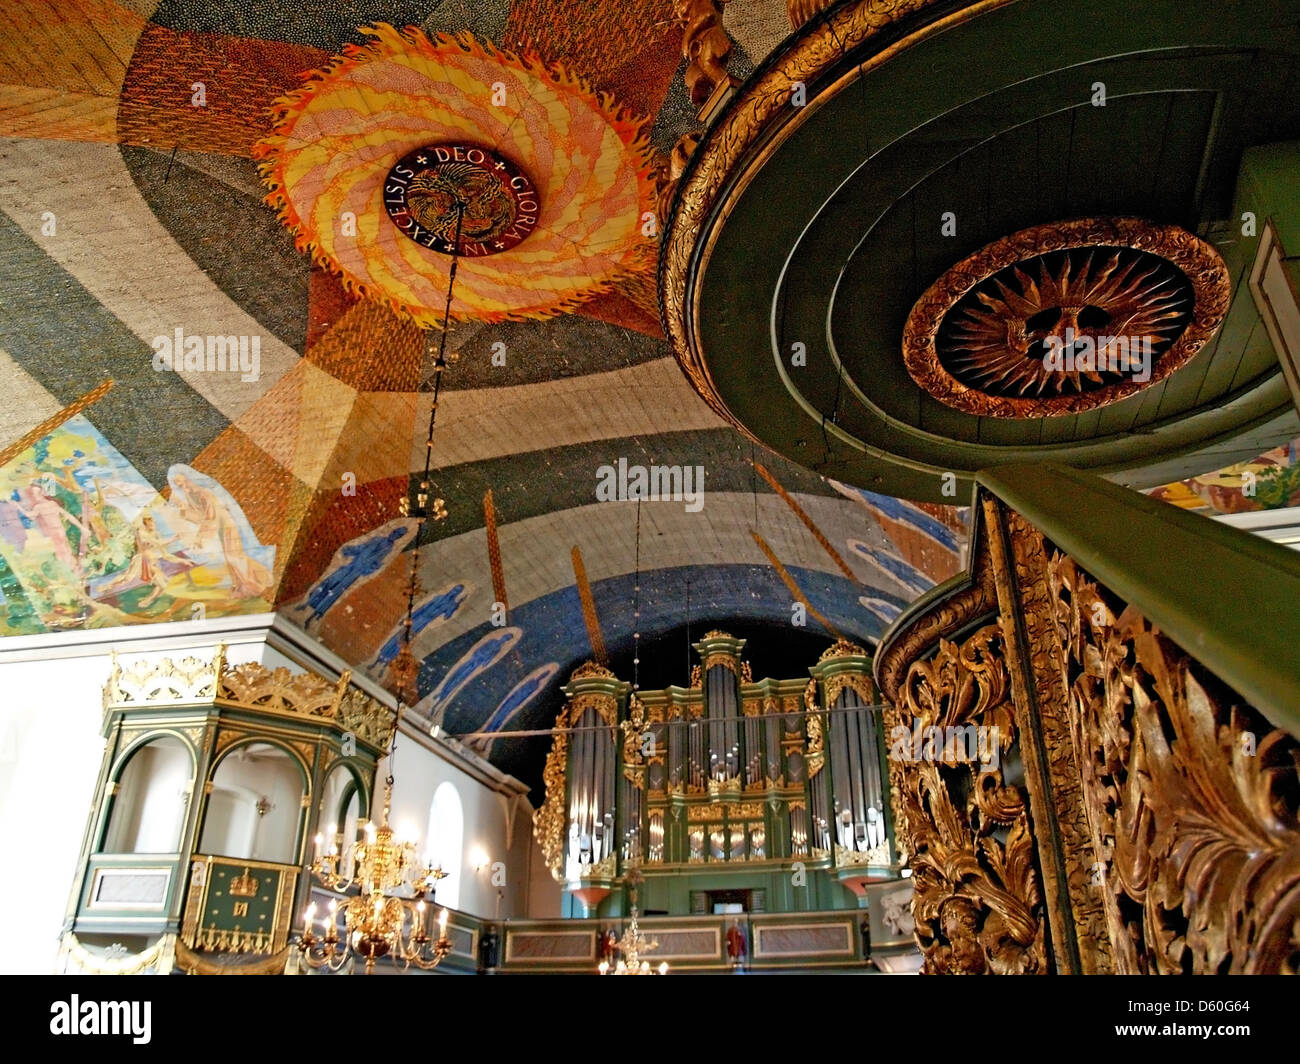 The Royal Box and pipe organ of Oslo Cathedral,Norway - Stock Image